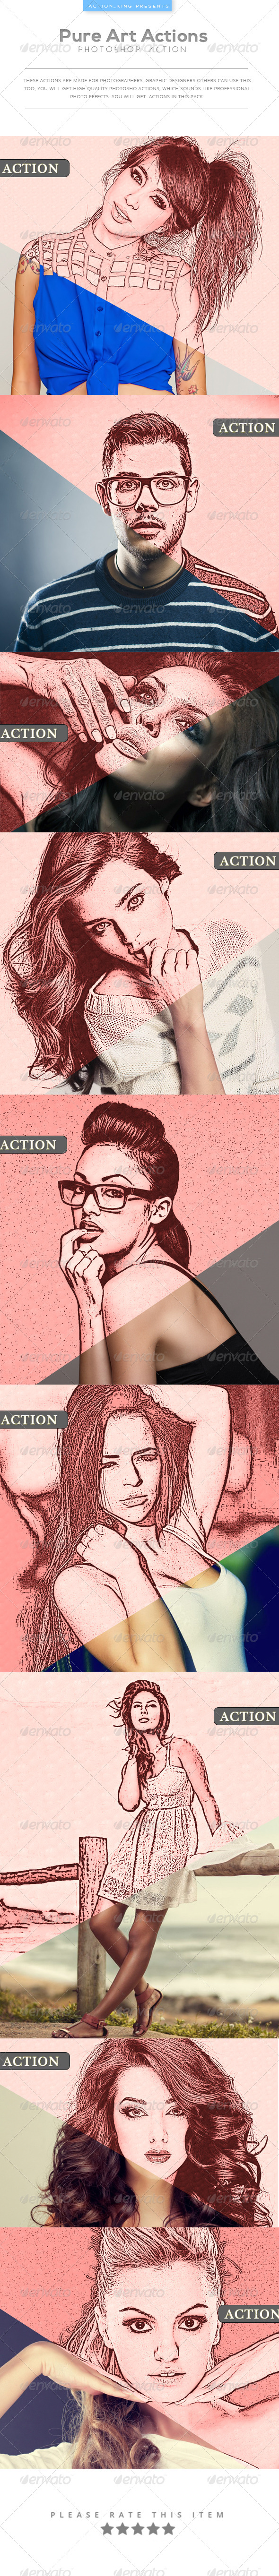 GraphicRiver Pure Art Actions 8226035